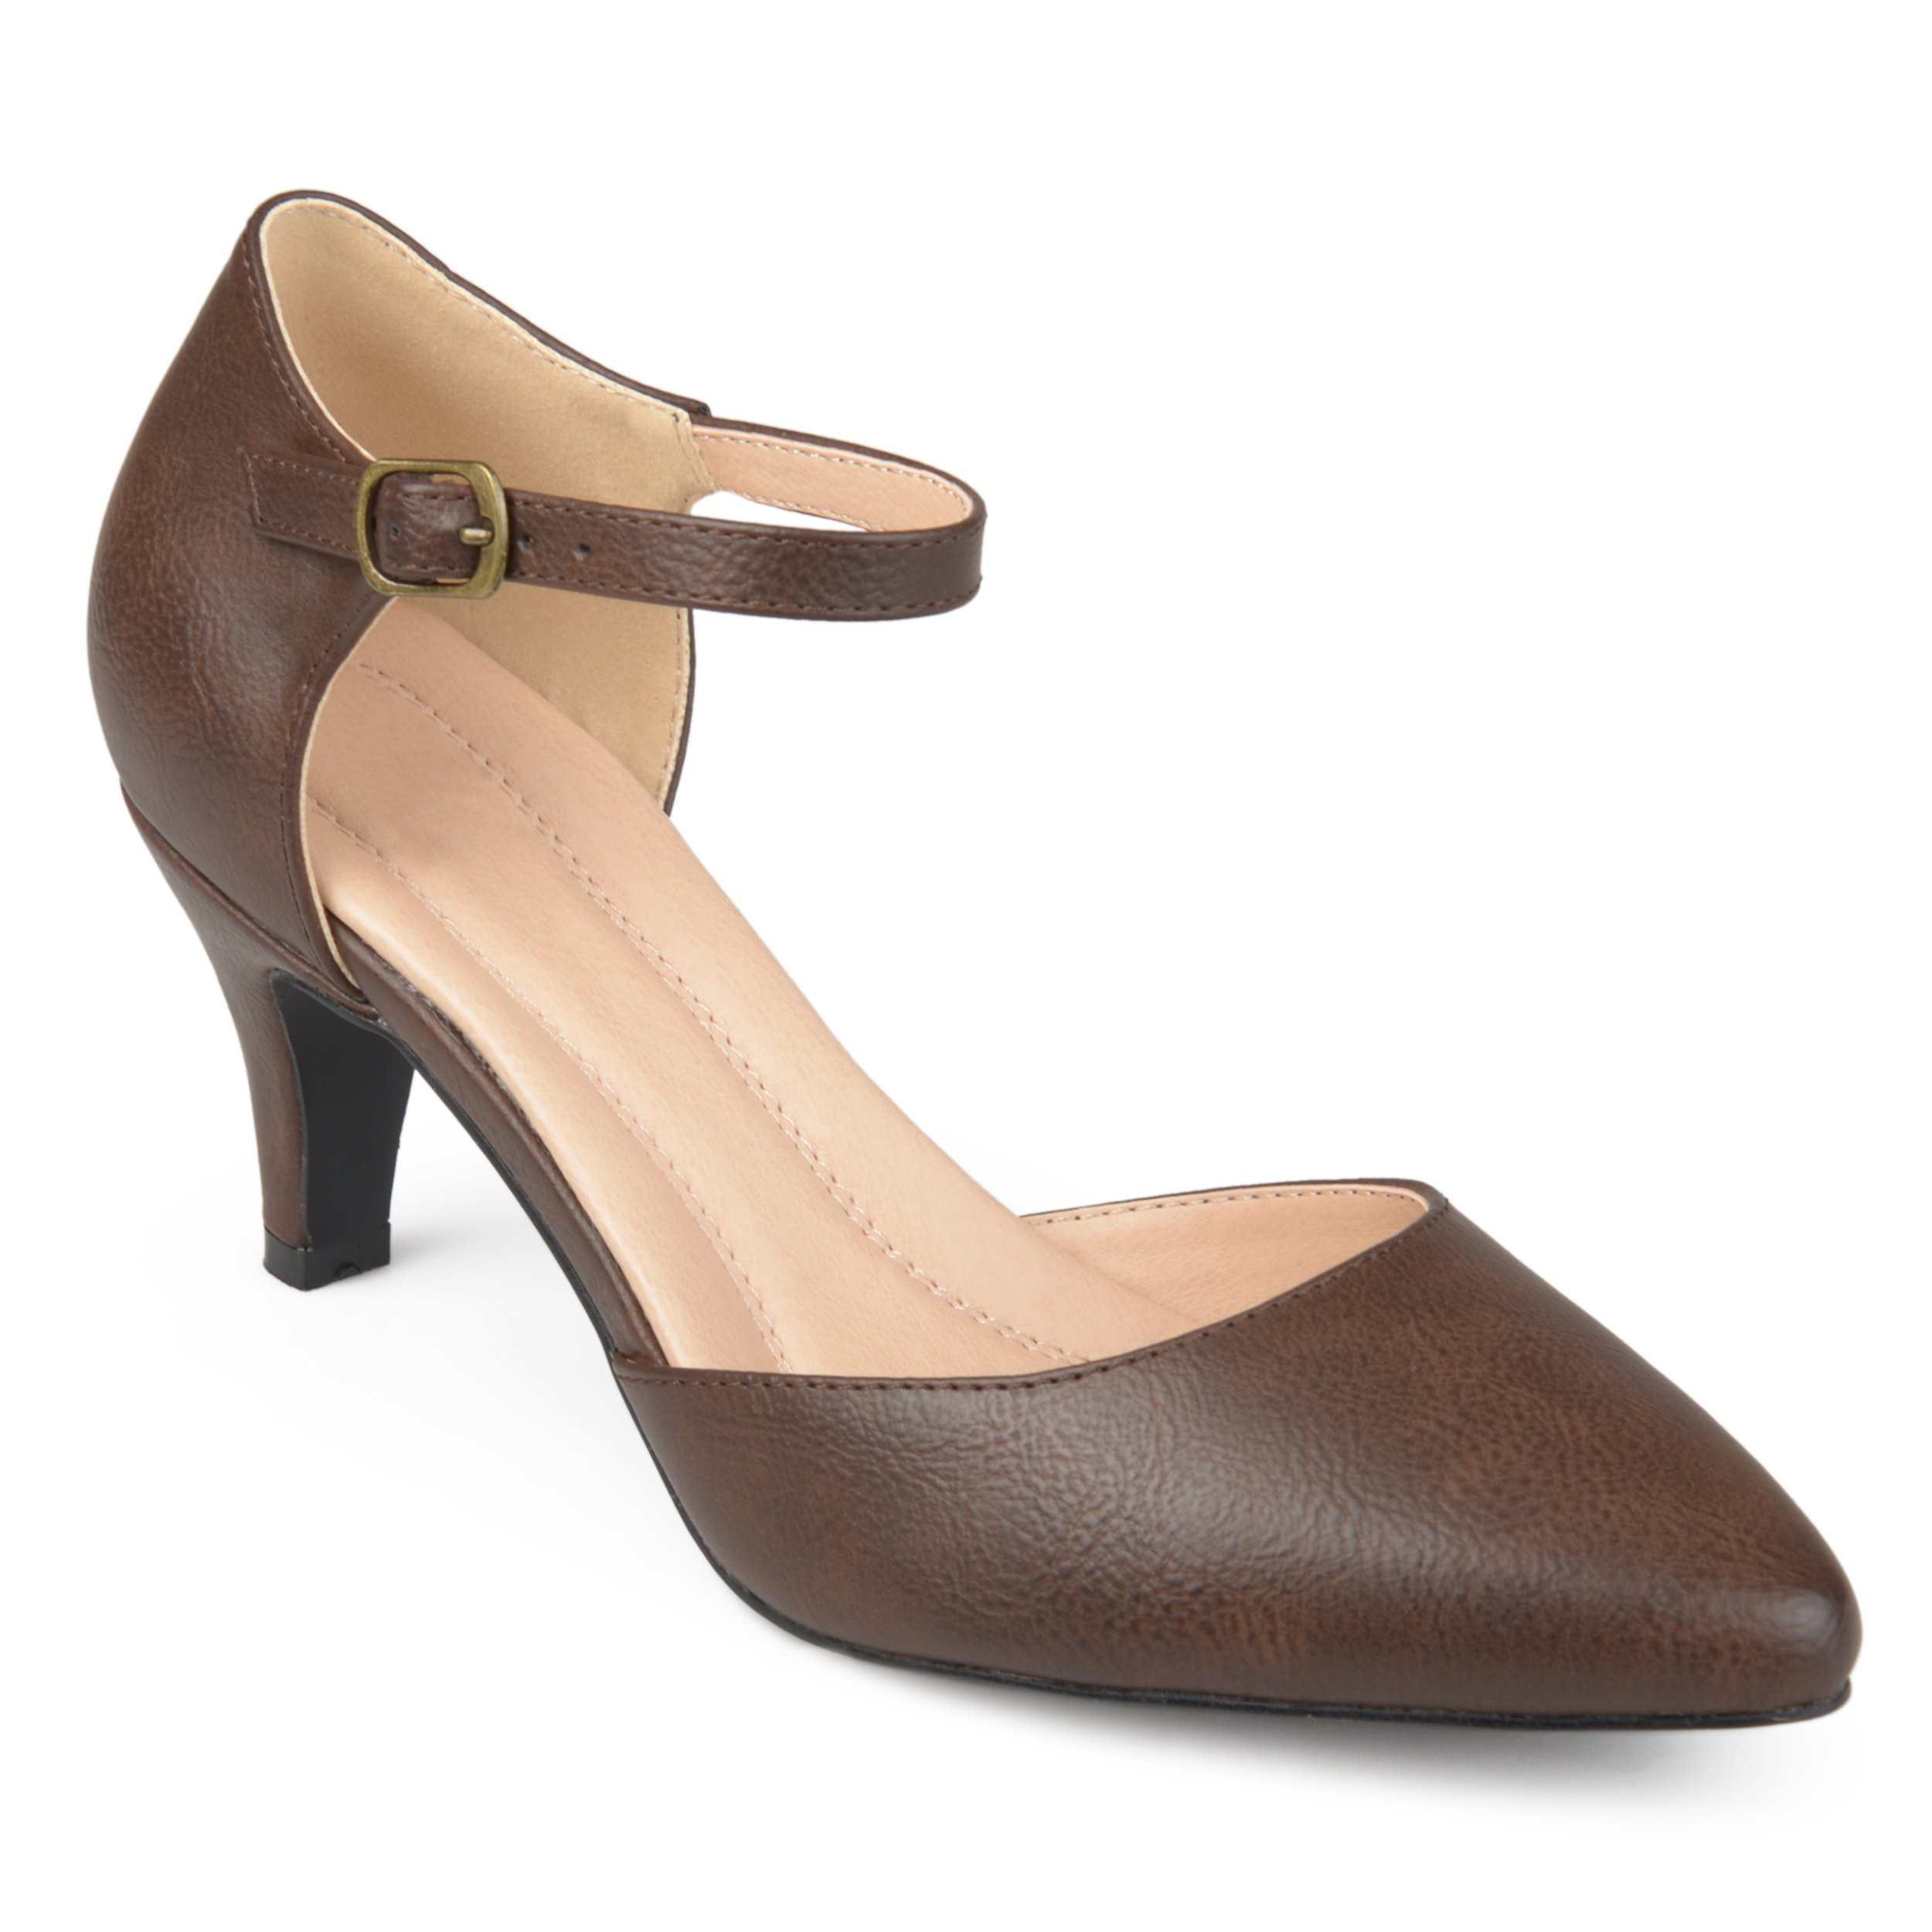 Journee Collection Womens Comfort Sole Almond Toe Ankle Strap D'Orsay Heels Brown, 6.5 Regular US